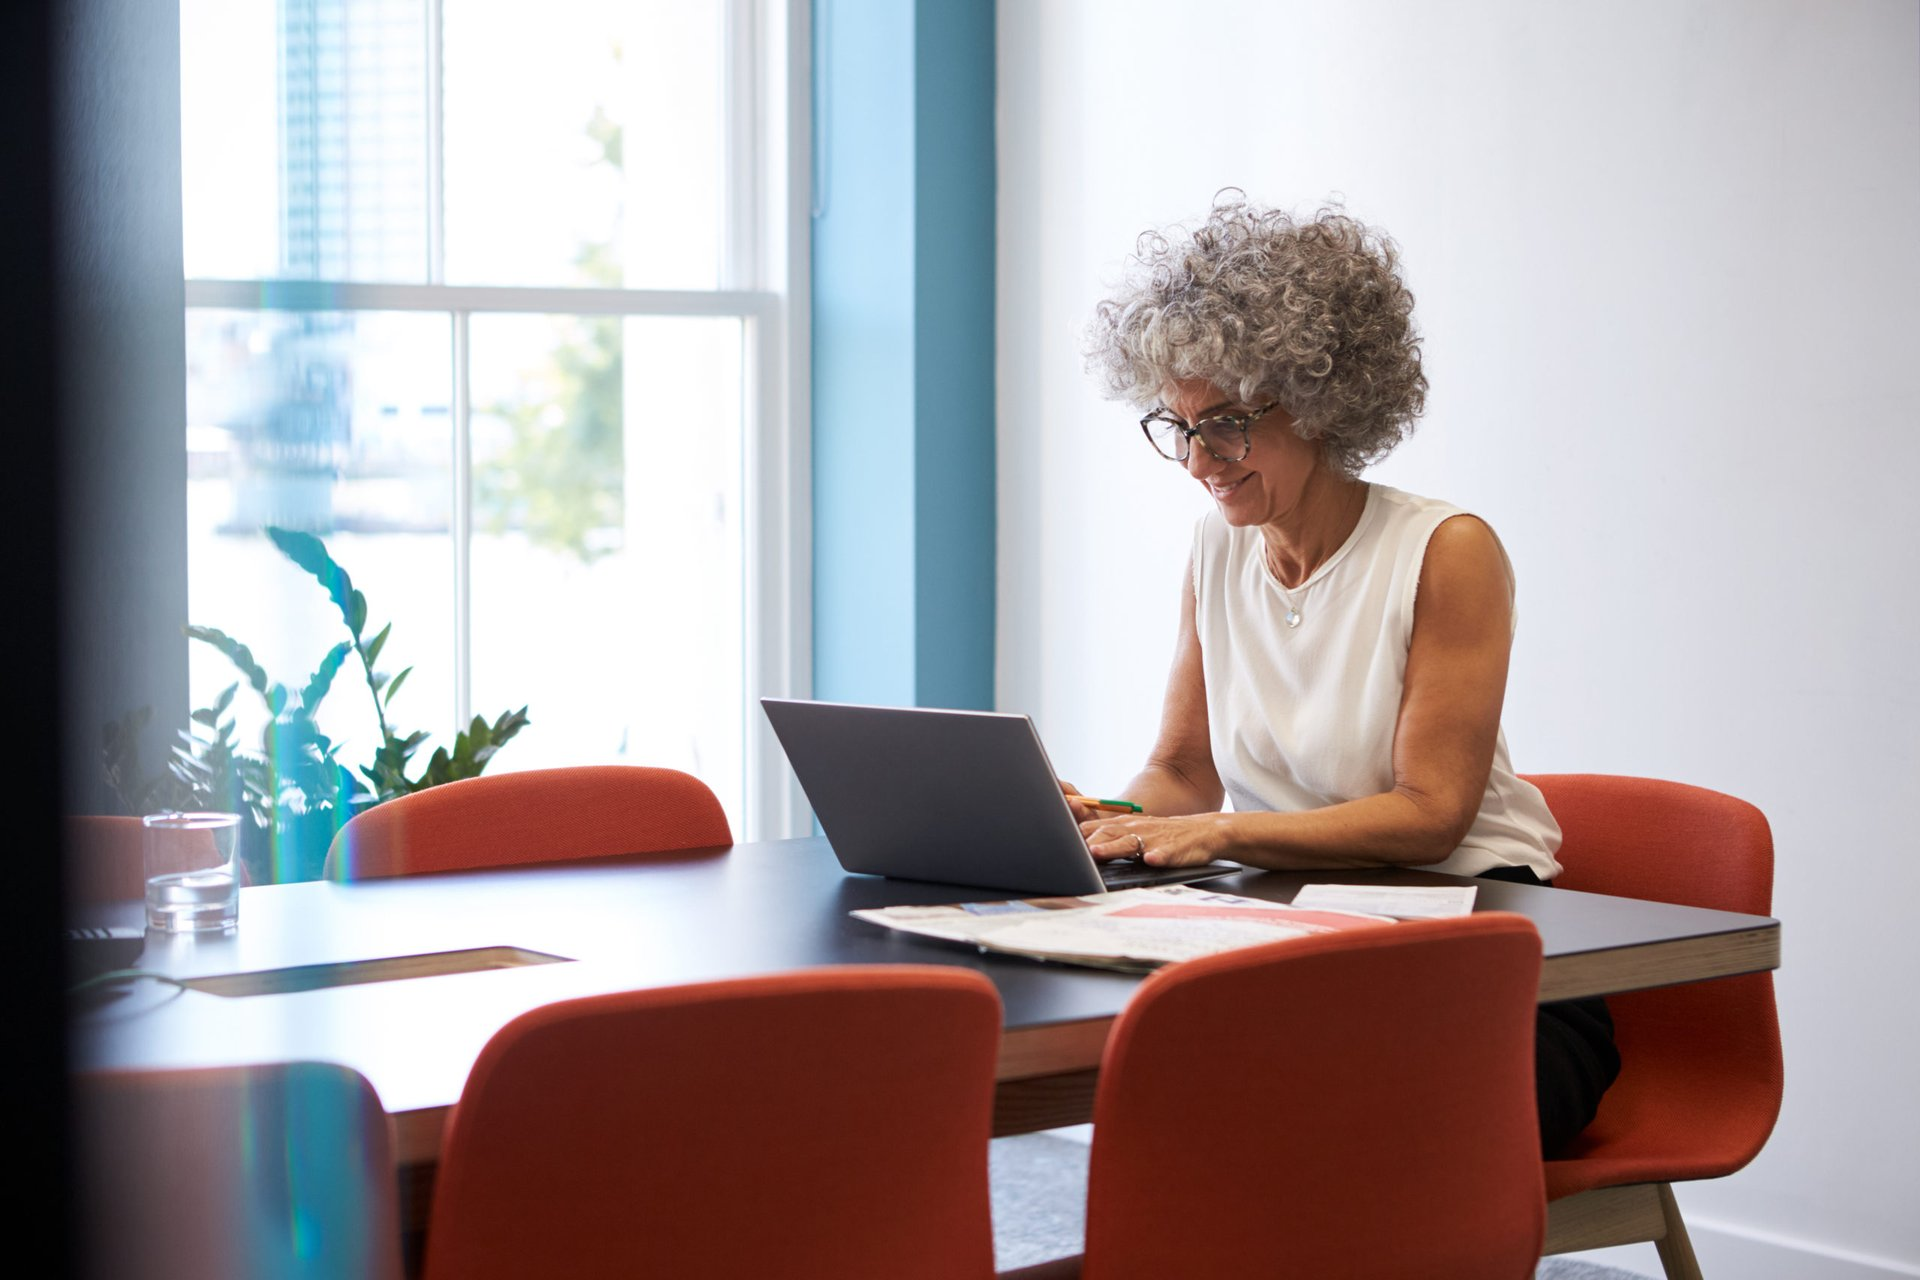 An older woman working on a laptop